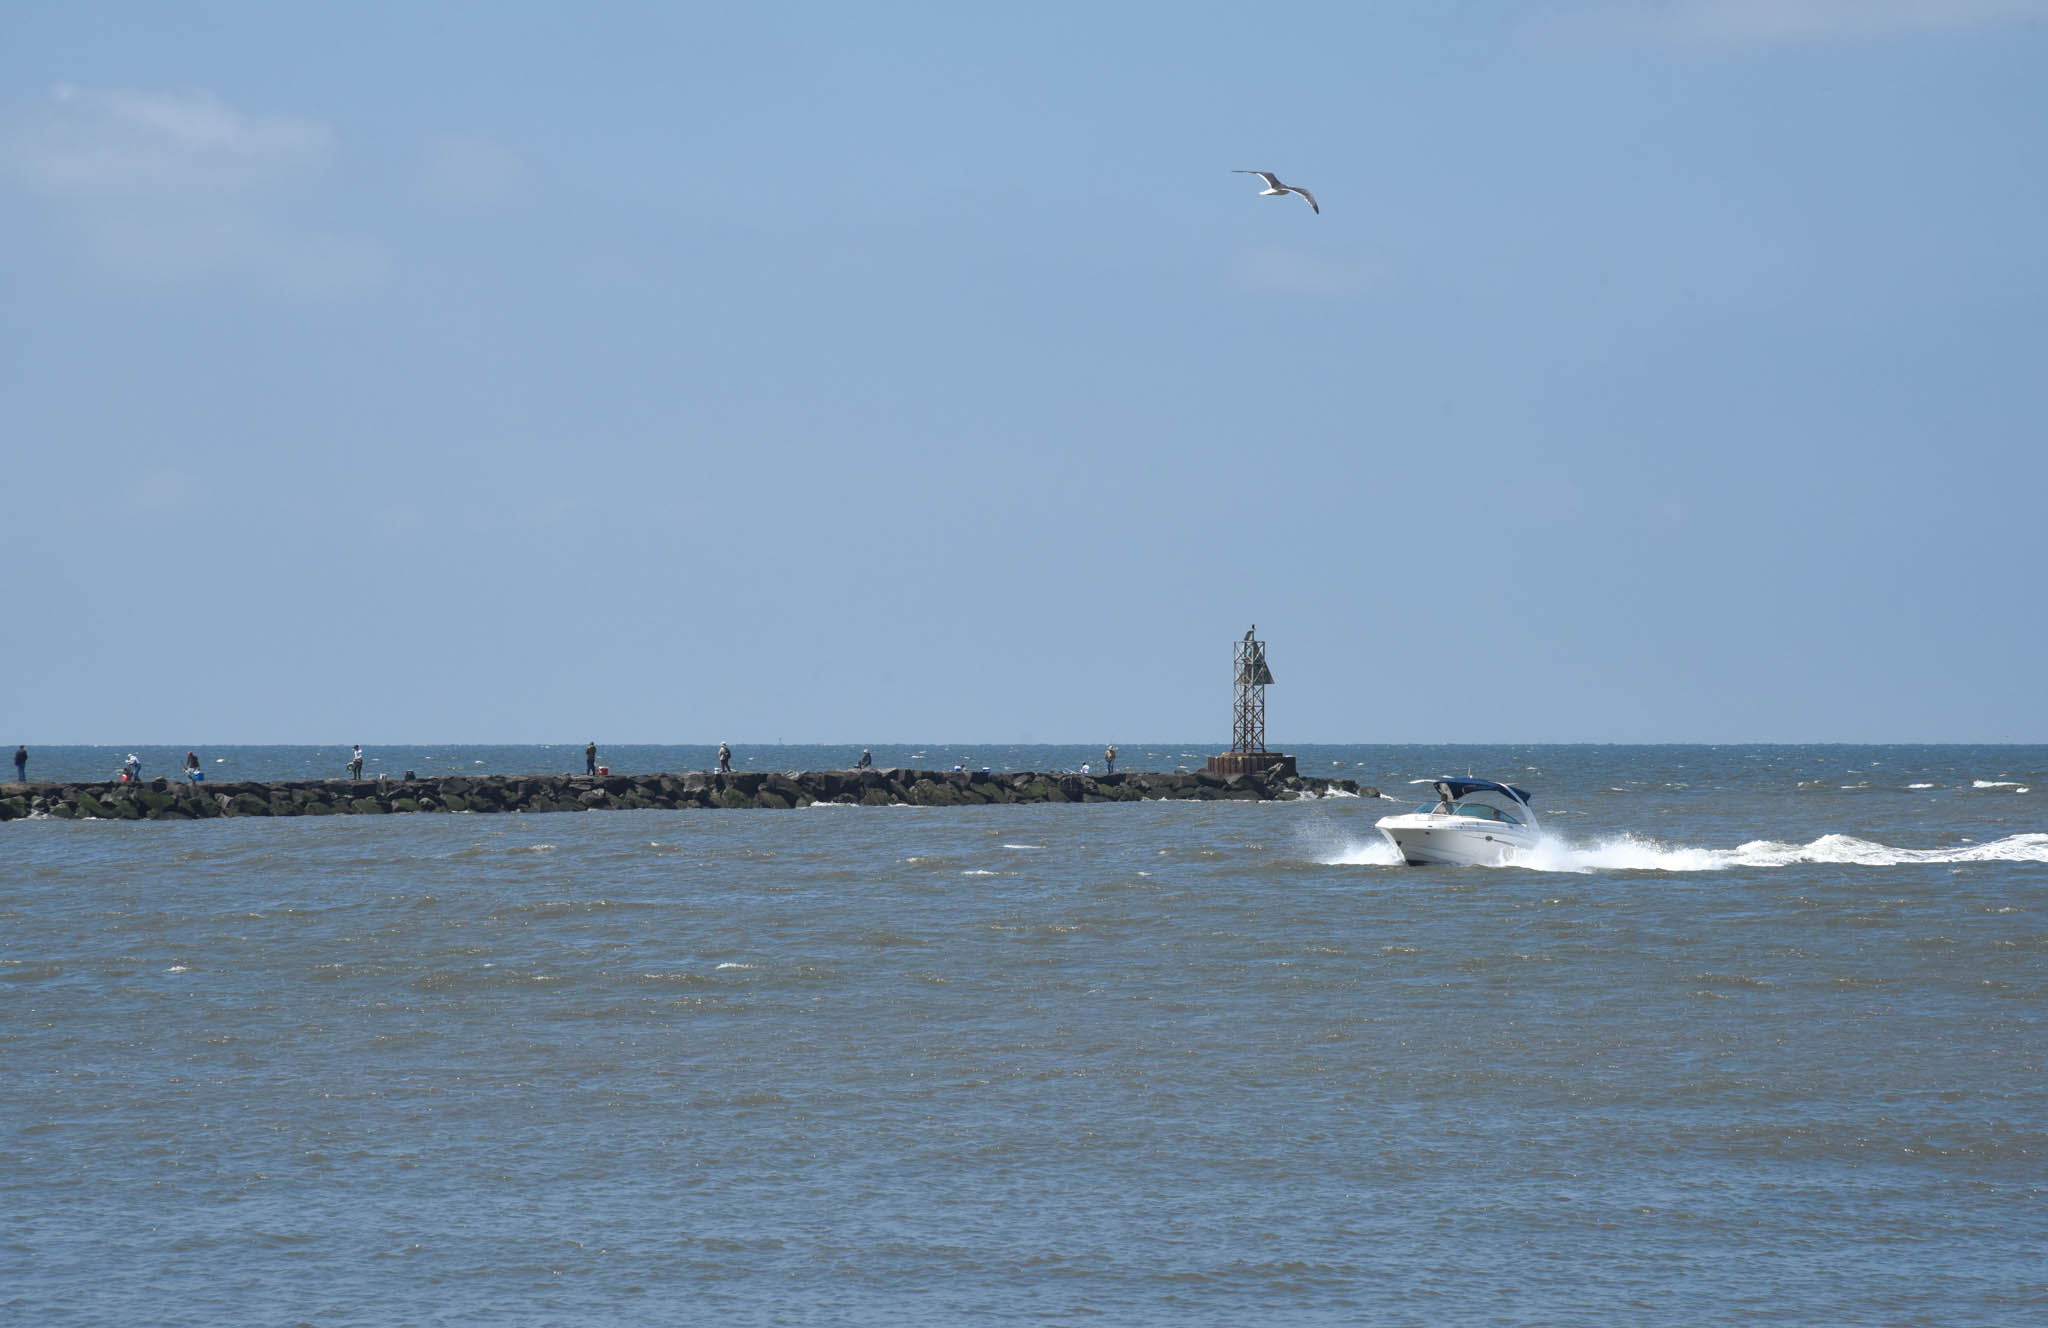 A boat heading back to the harbor, people fishing on the jetty